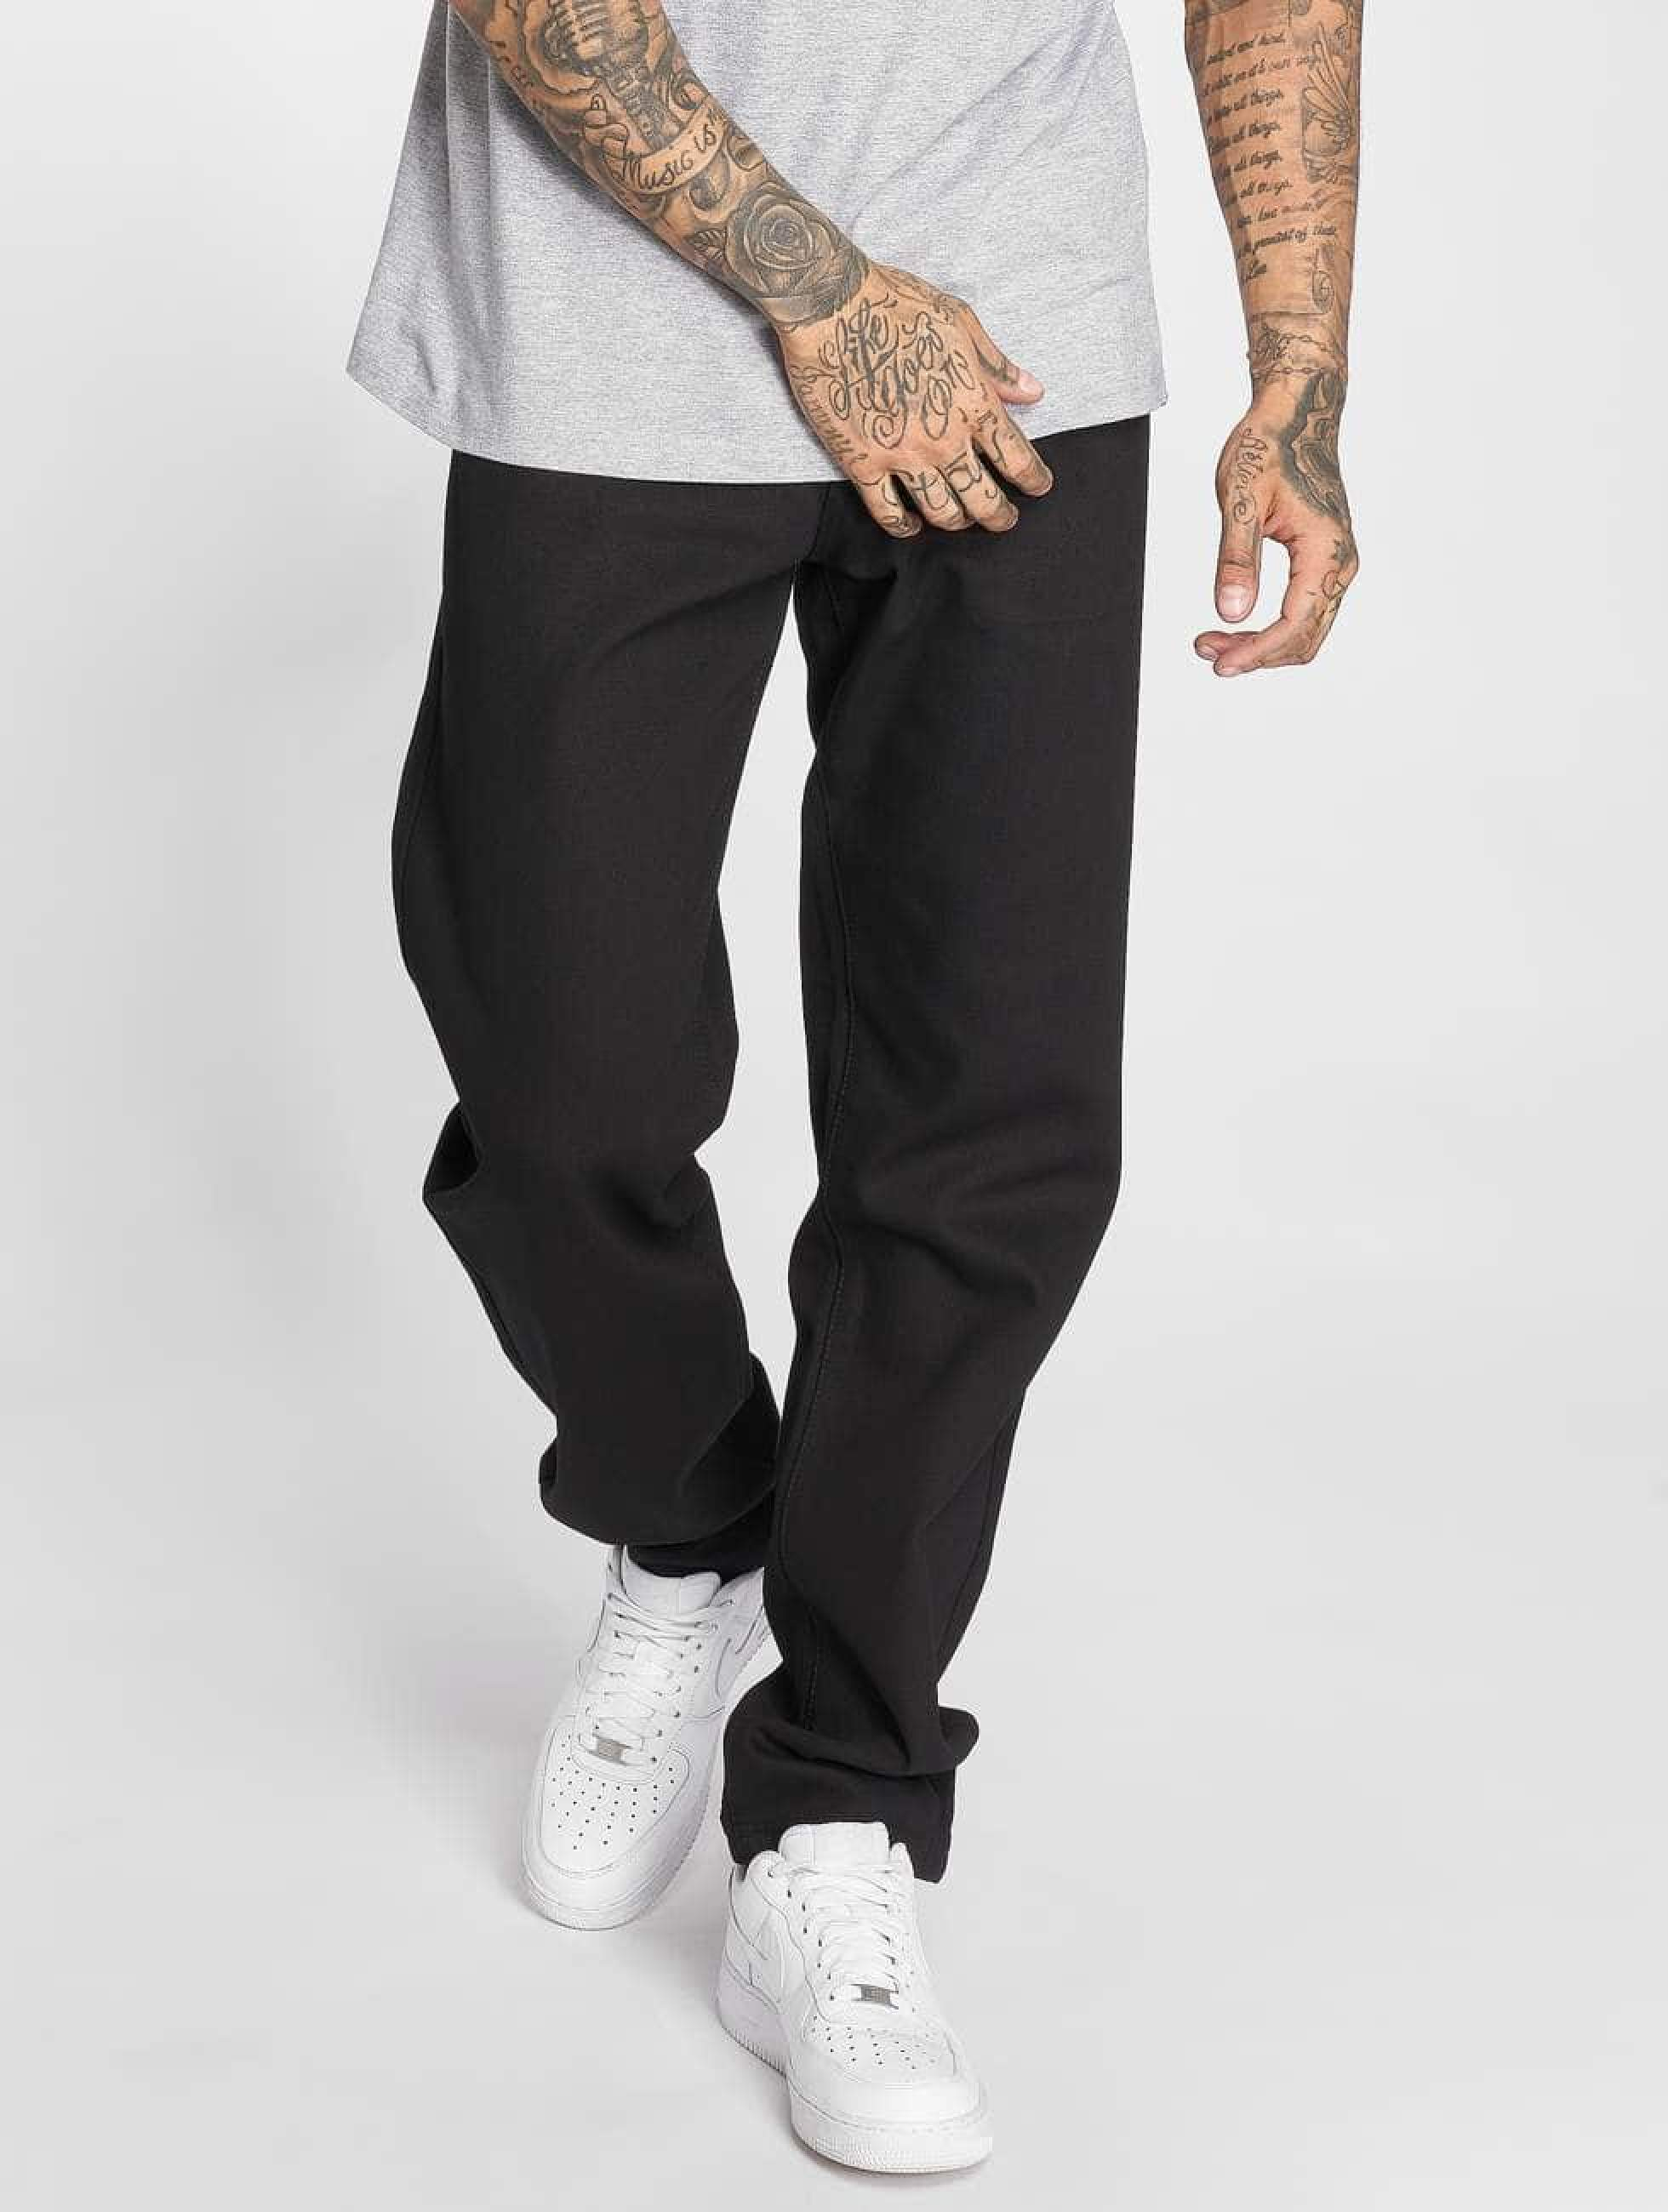 Thug Life / Carrot Fit Jeans B . Denim in black W 36 L 32